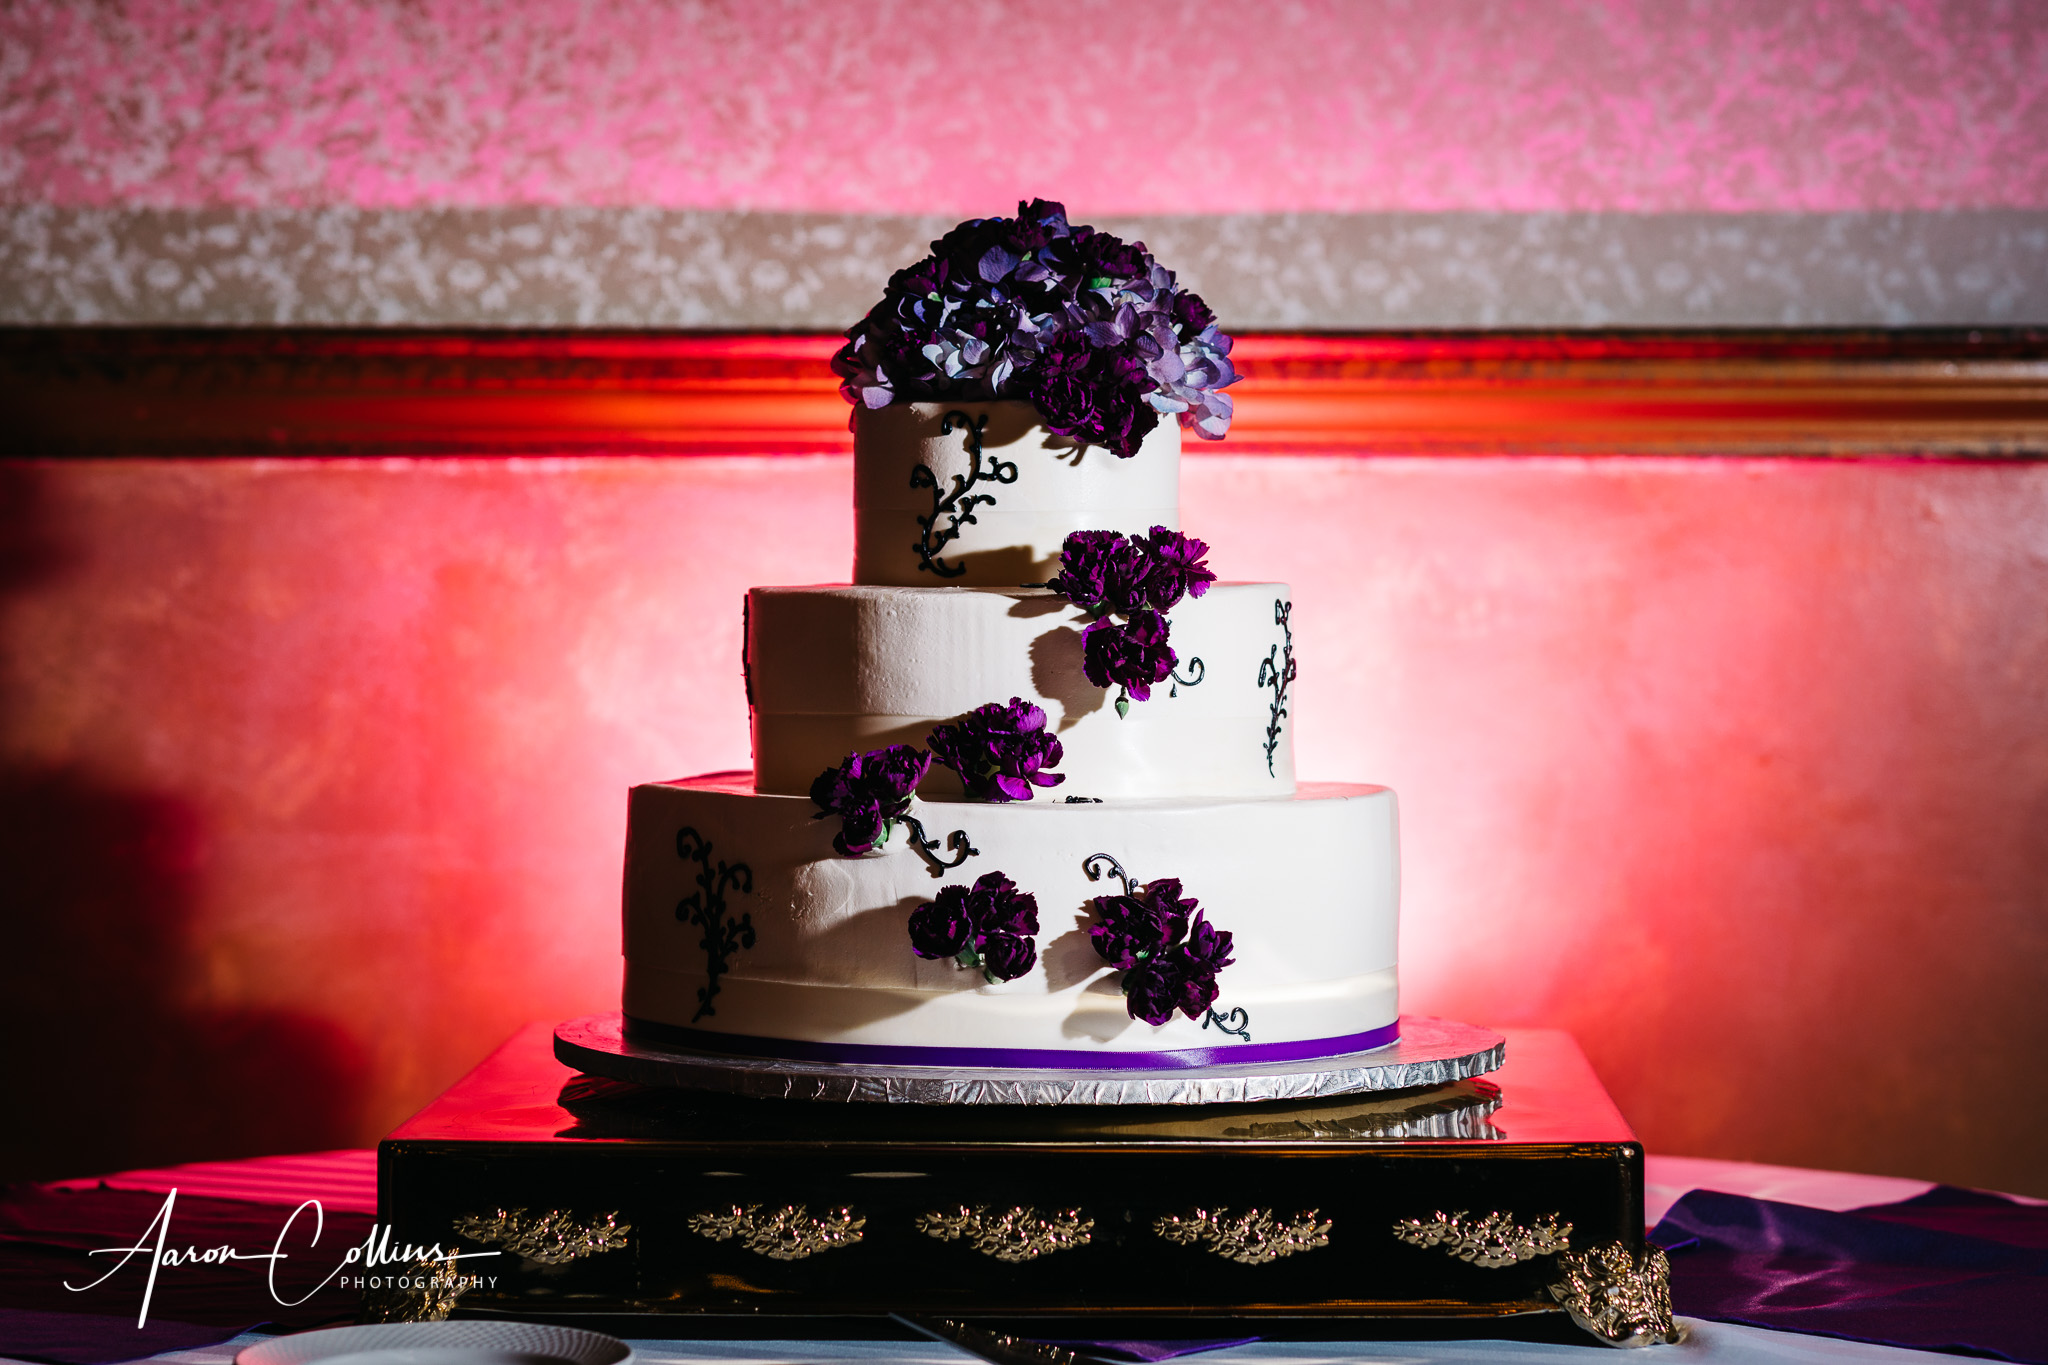 Cakes By Donna wedding cake seen here with some creative off-camera lighting for dramatic effect.